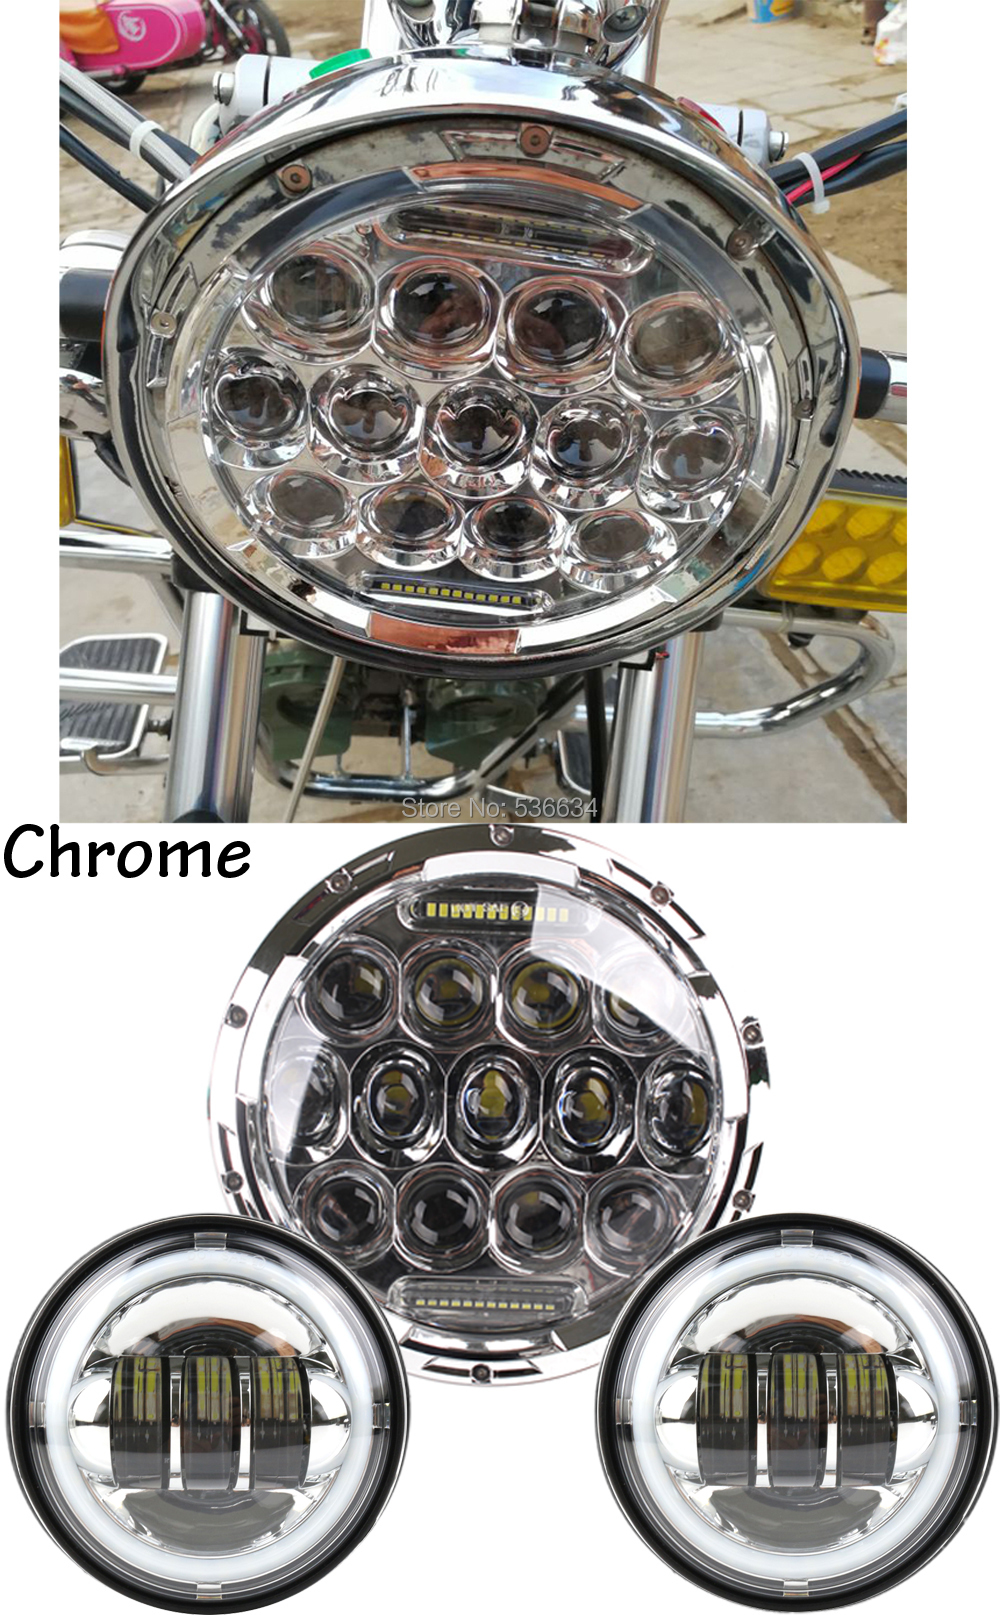 7Inch LED Headlight Projector Daymaker Matching 4.5Inch LED Passing Lamps Fog Lights HaloFor Harley Davidson Electra Glide Ultra